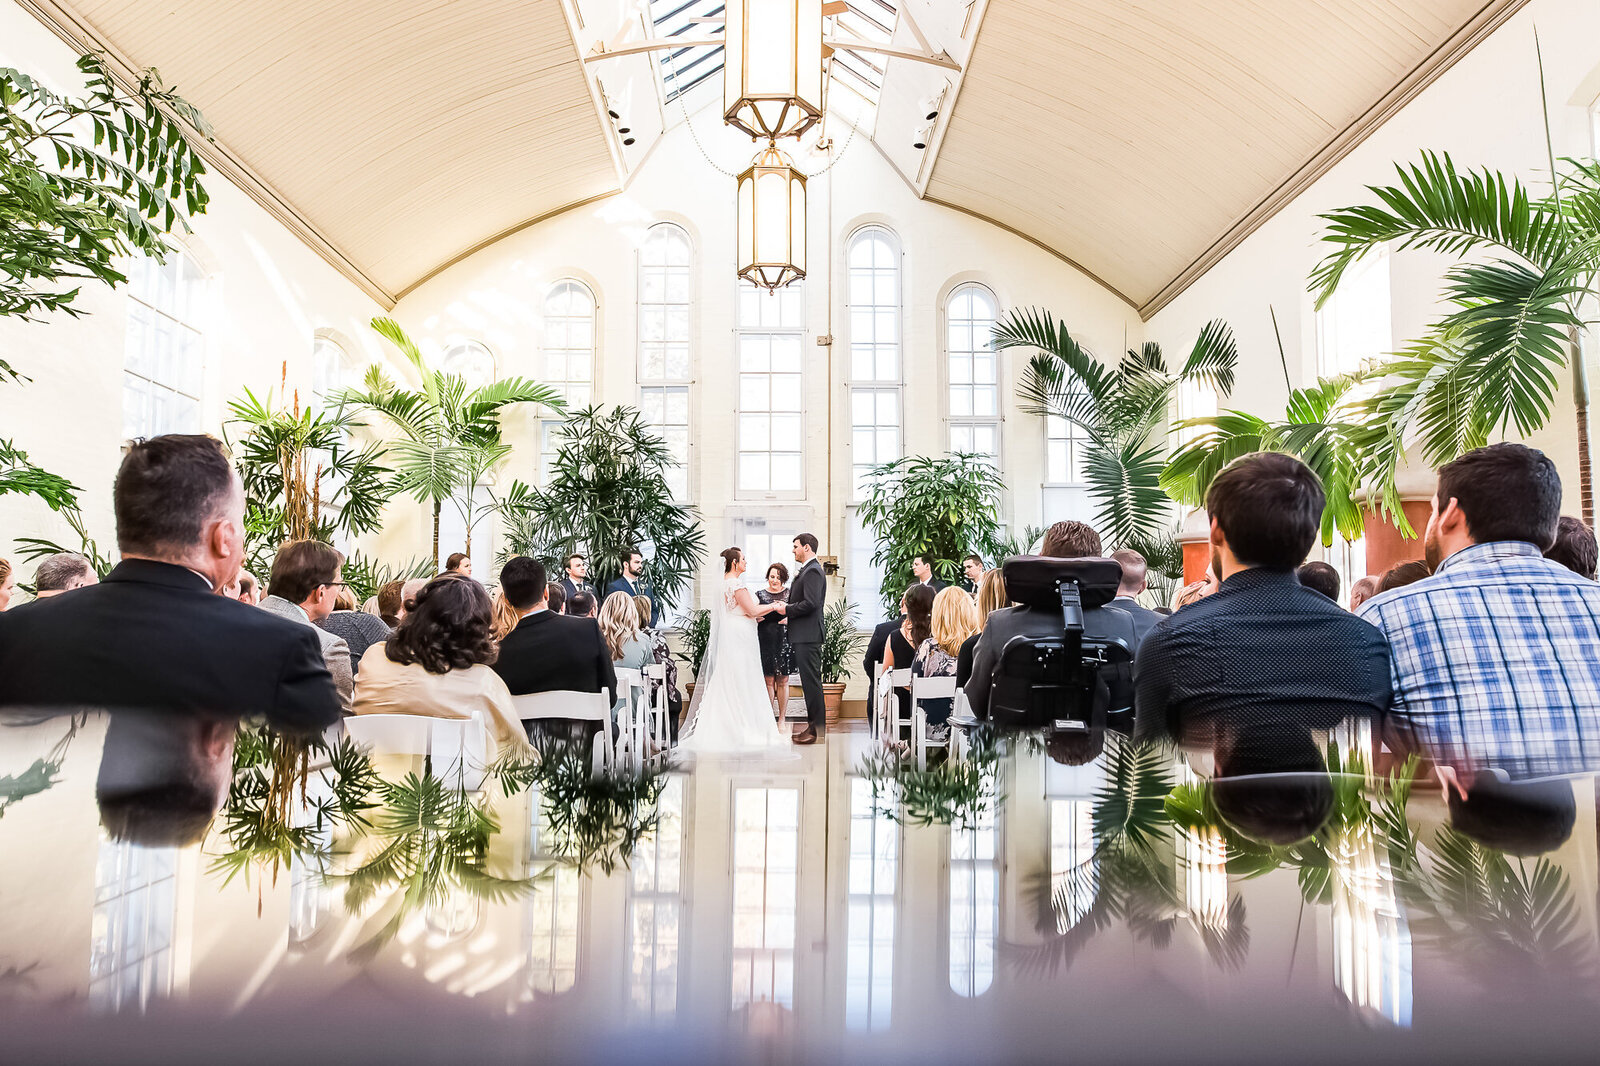 Creative reflection of Piper Palm House wedding venue during wedding ceremony in St. Louis